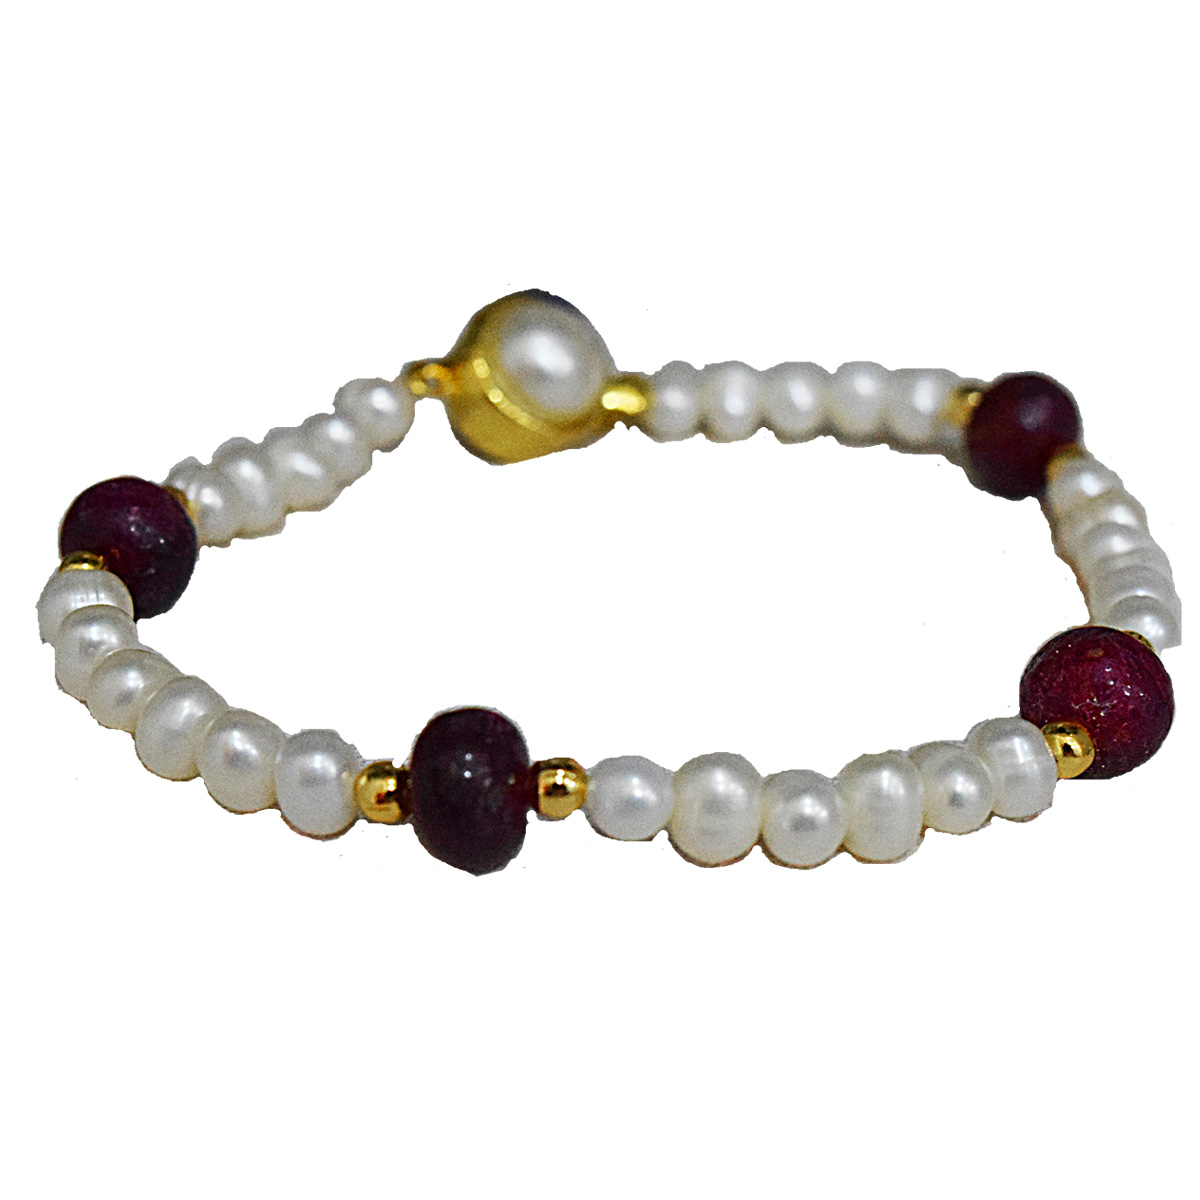 4 Real Red Button Ruby, Freshwater Pearl & Gold Plated Bracelet for Women